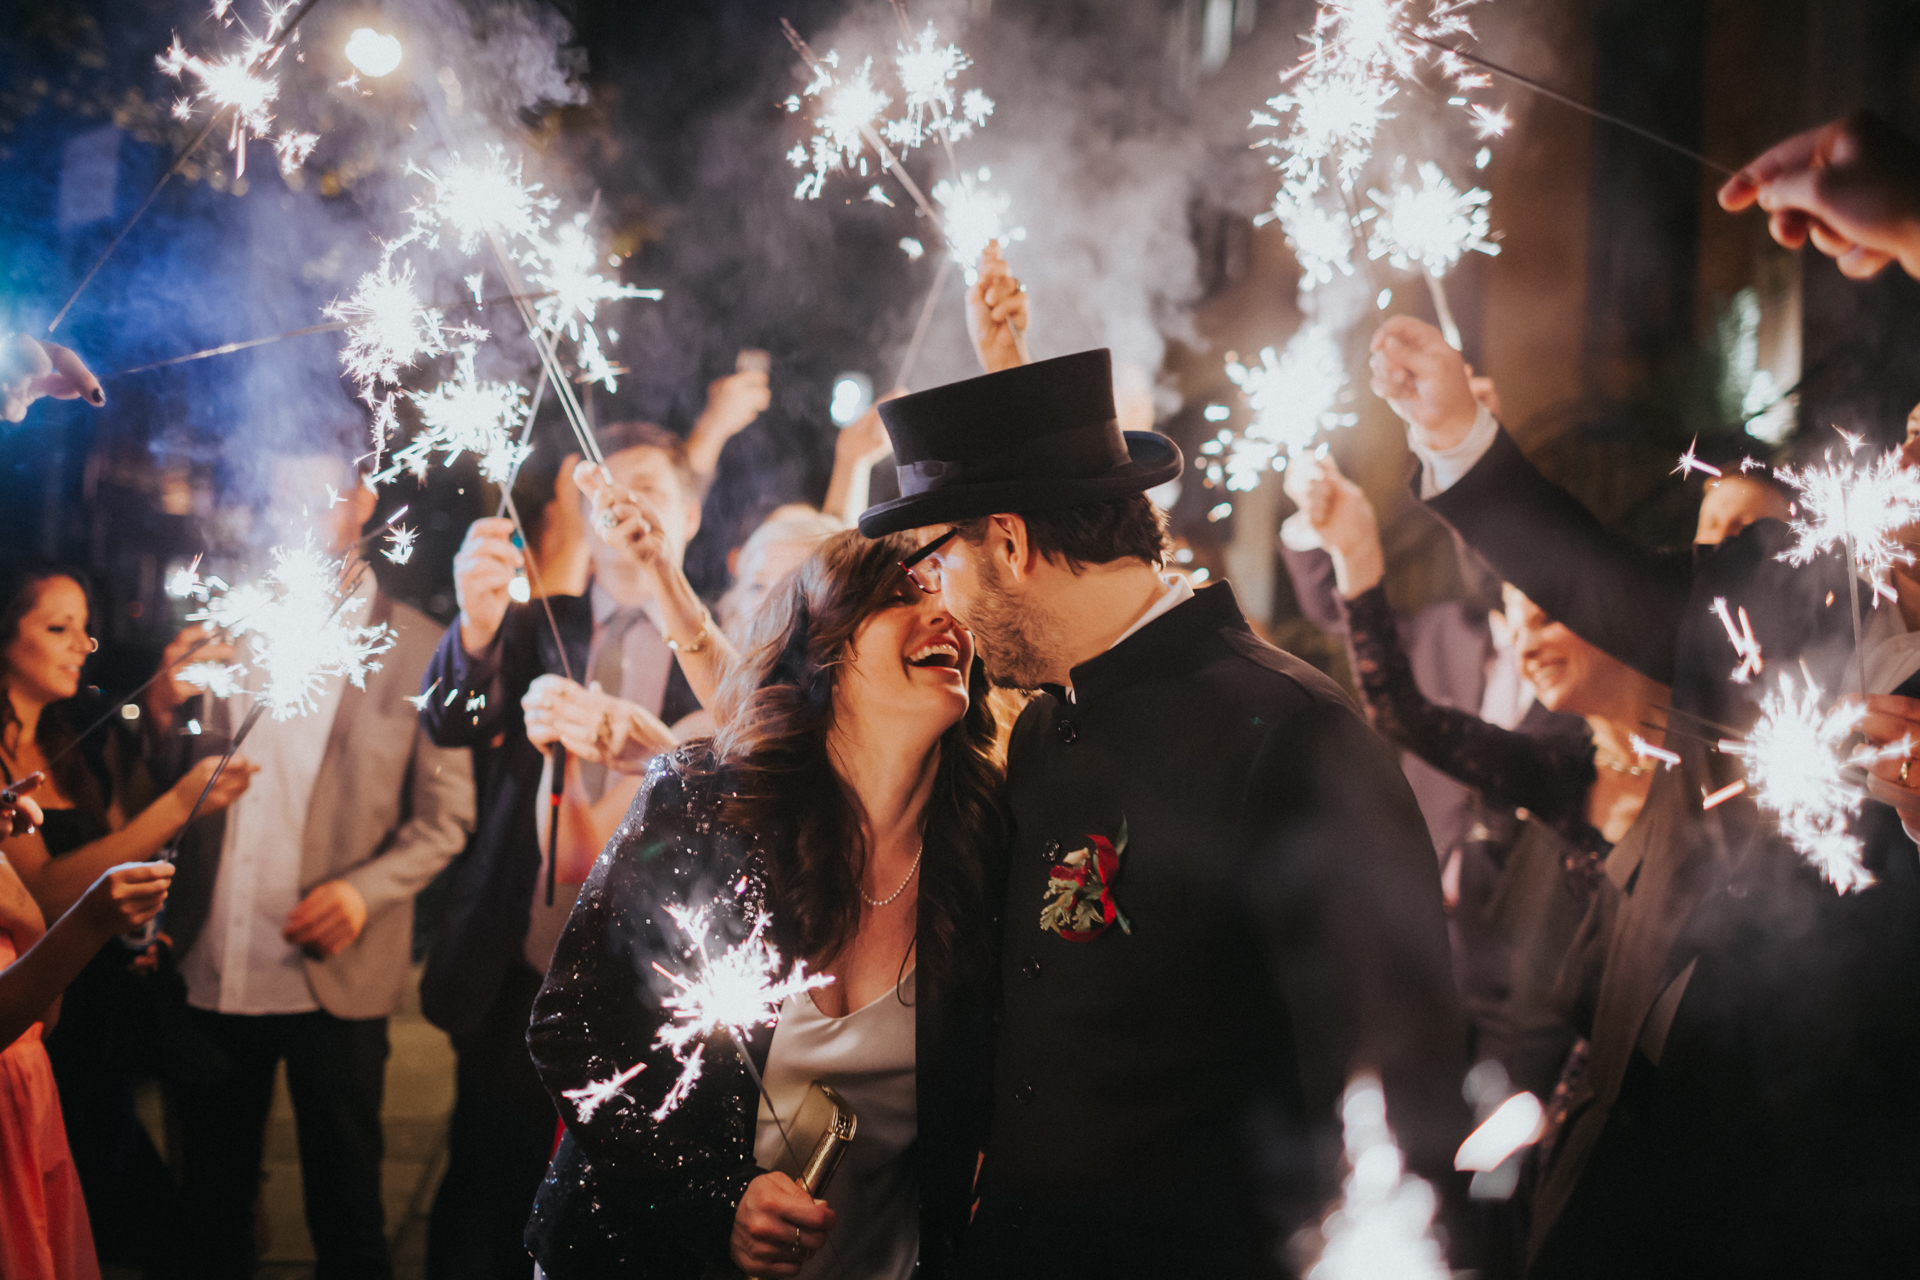 The bride and groom enjoying their send off with sparklers